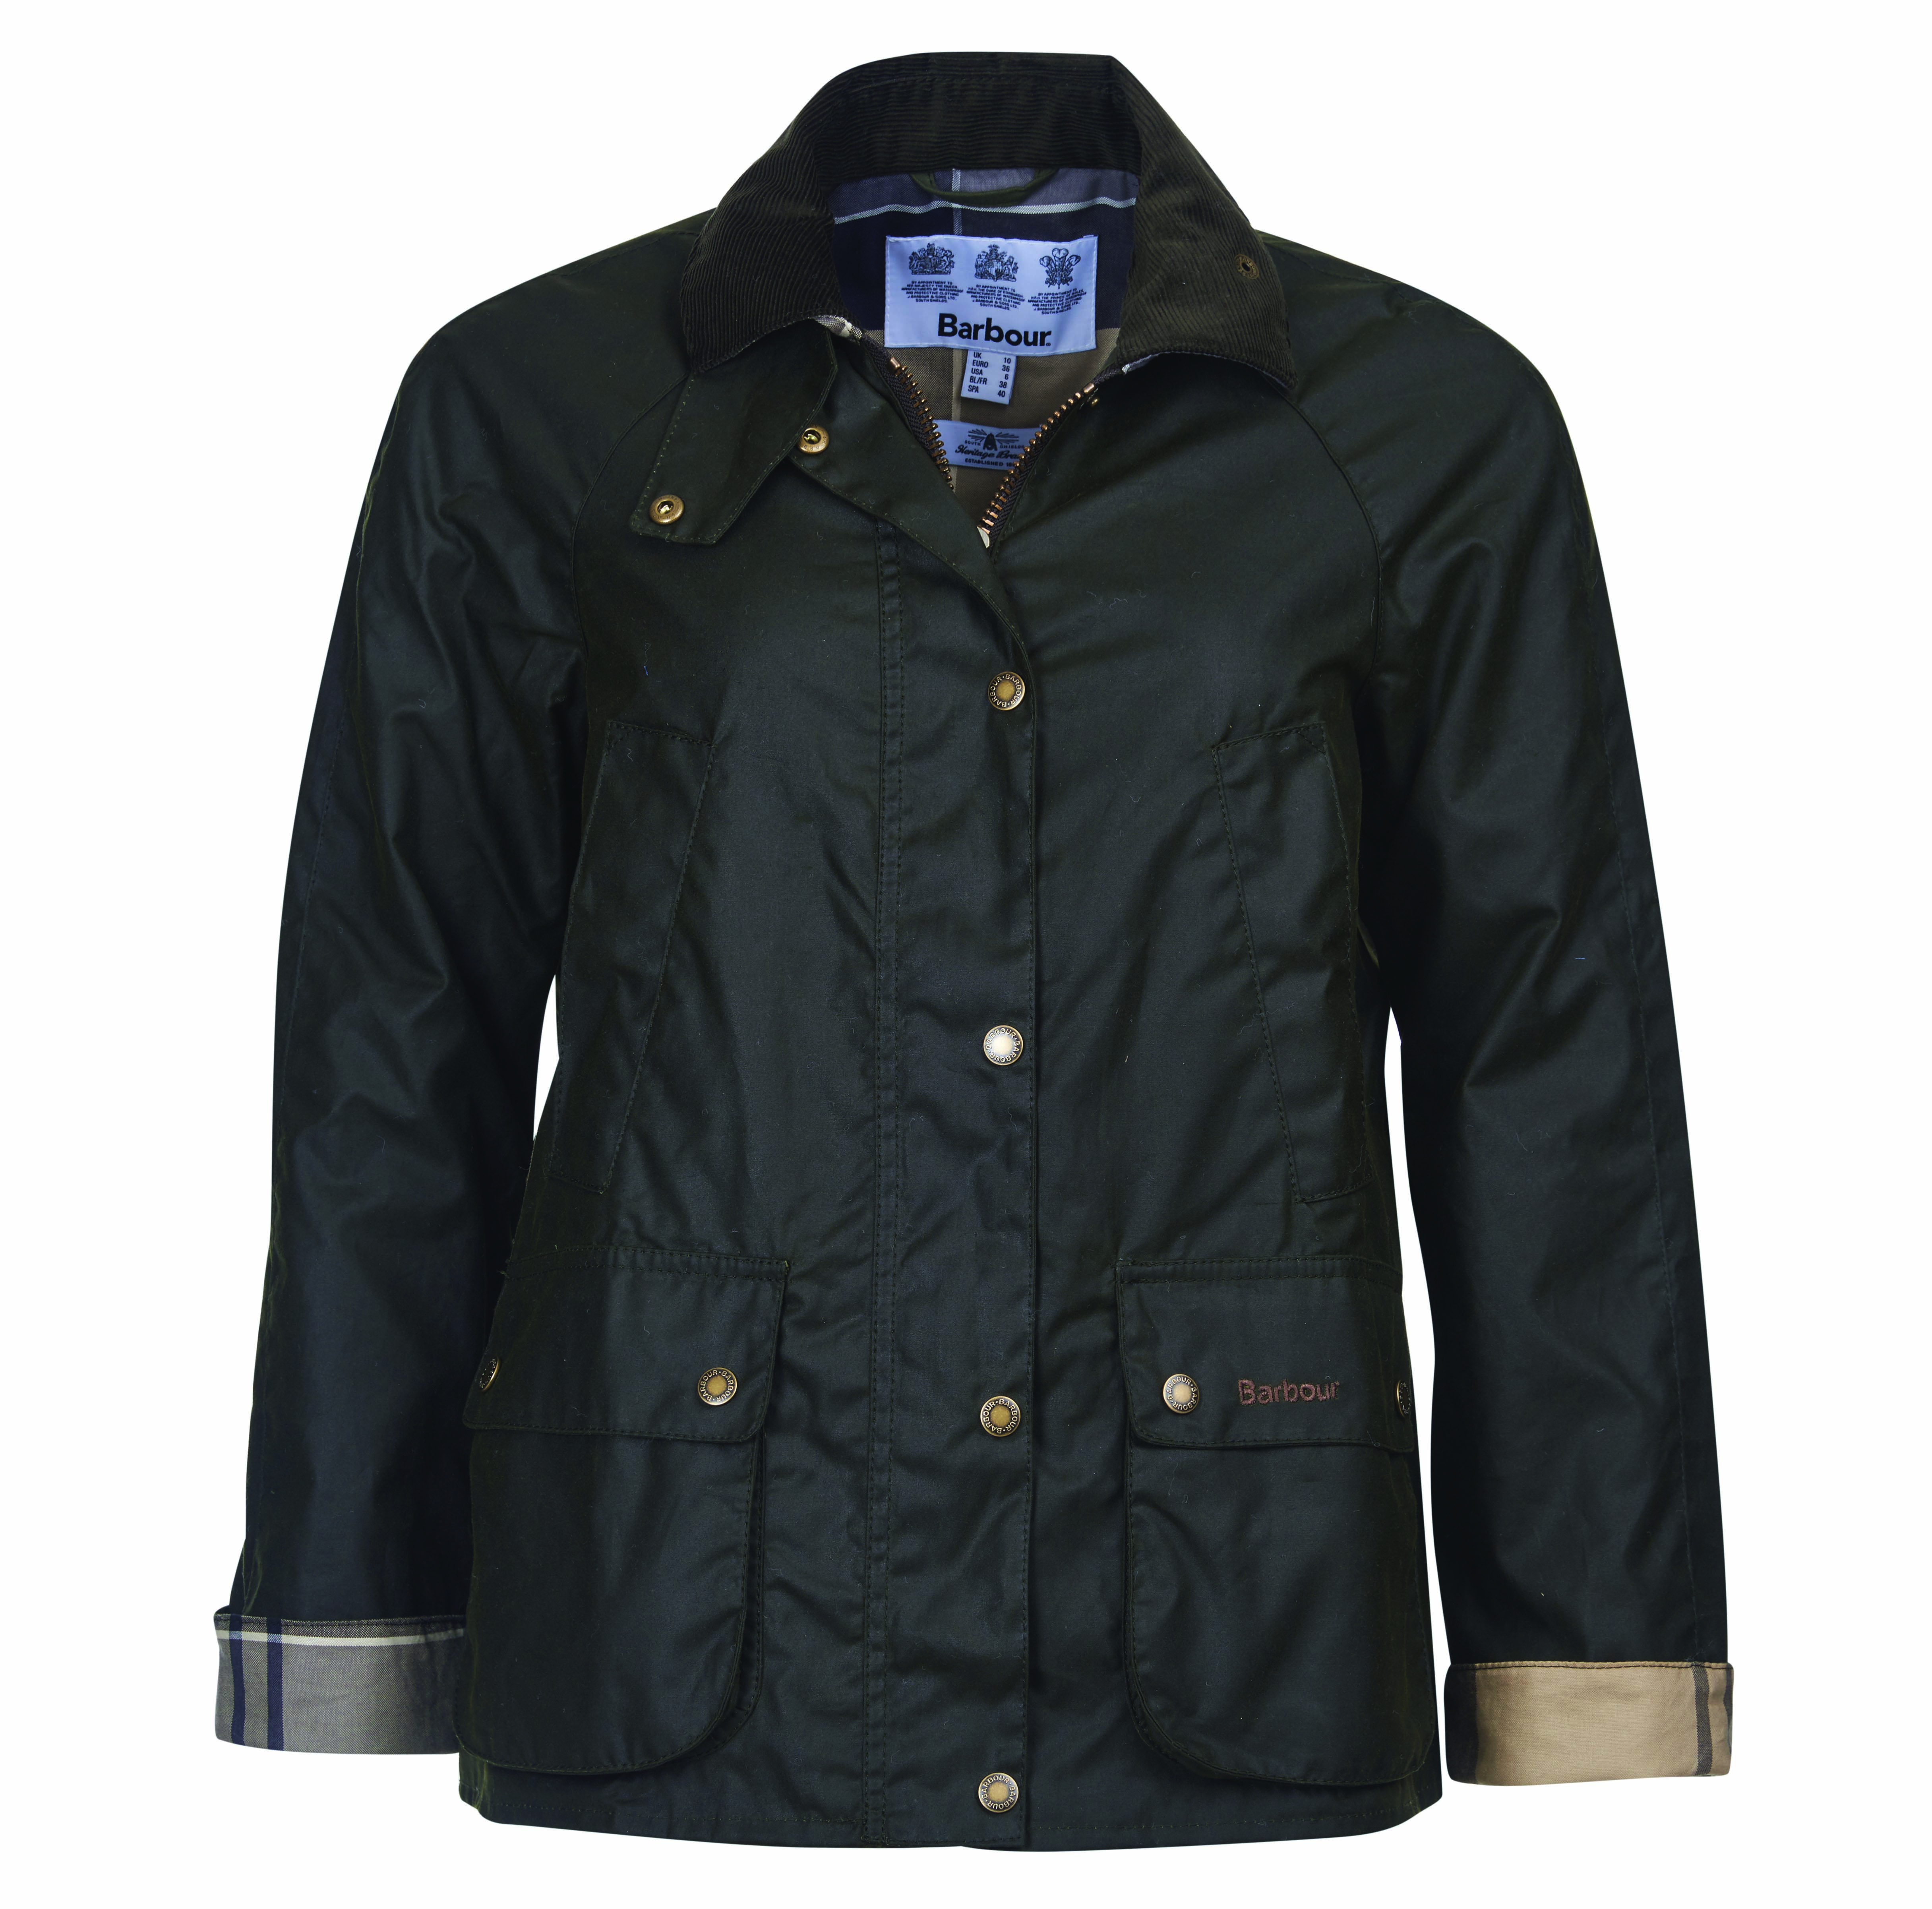 Barbour Annas Jacke